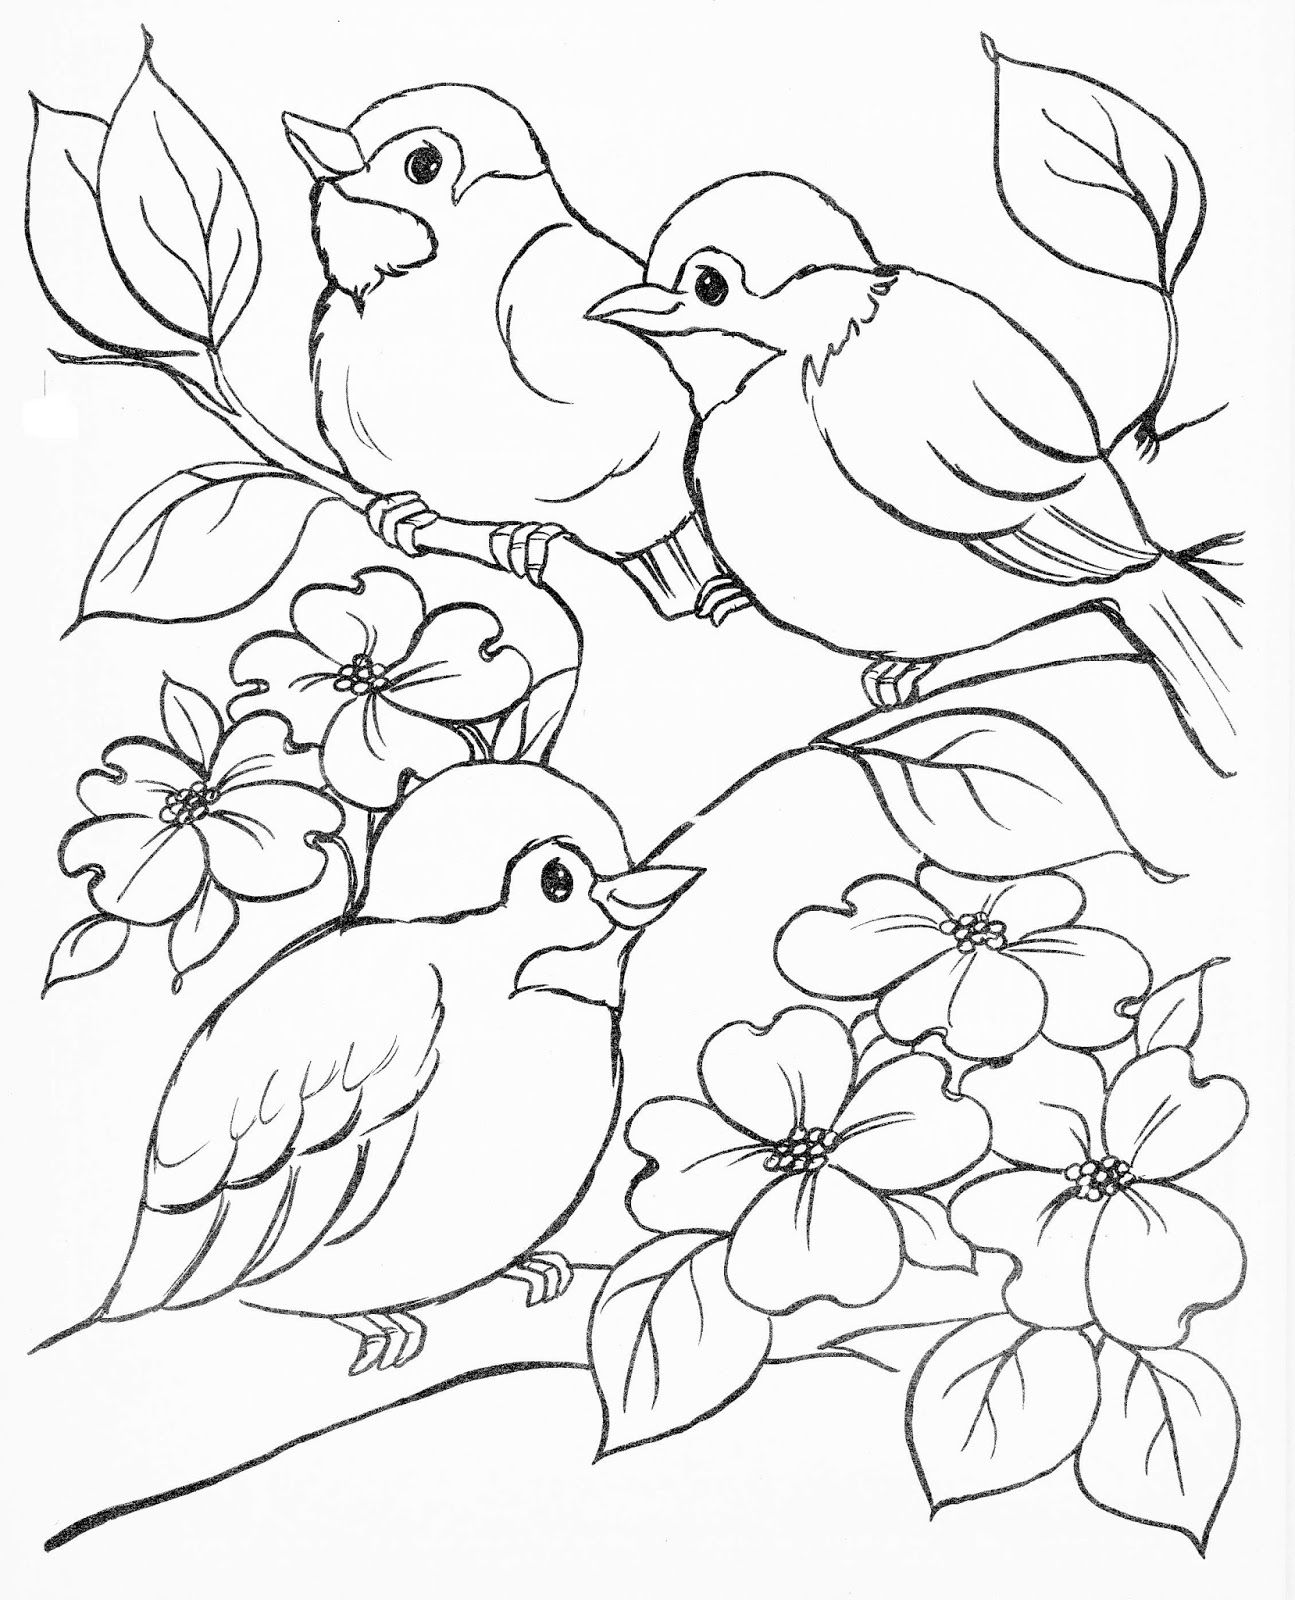 Bless This Day | Bird coloring pages, Bird drawings ...